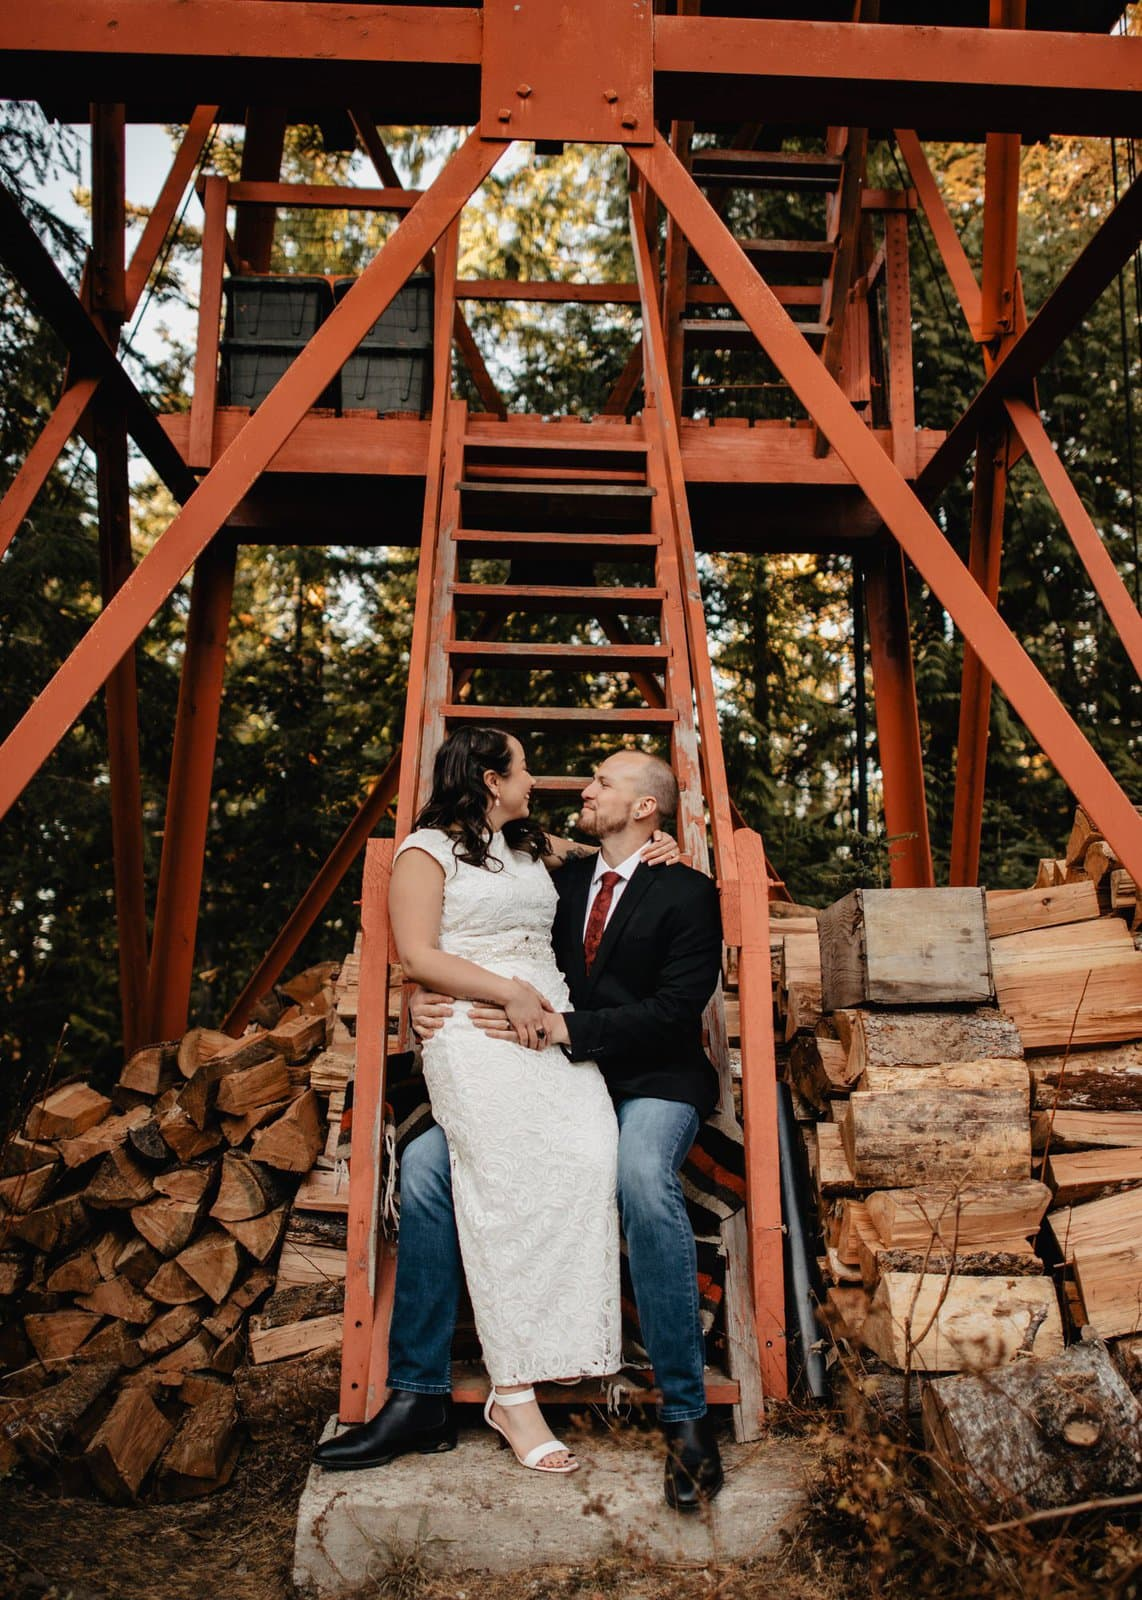 Simple idaho elopement.